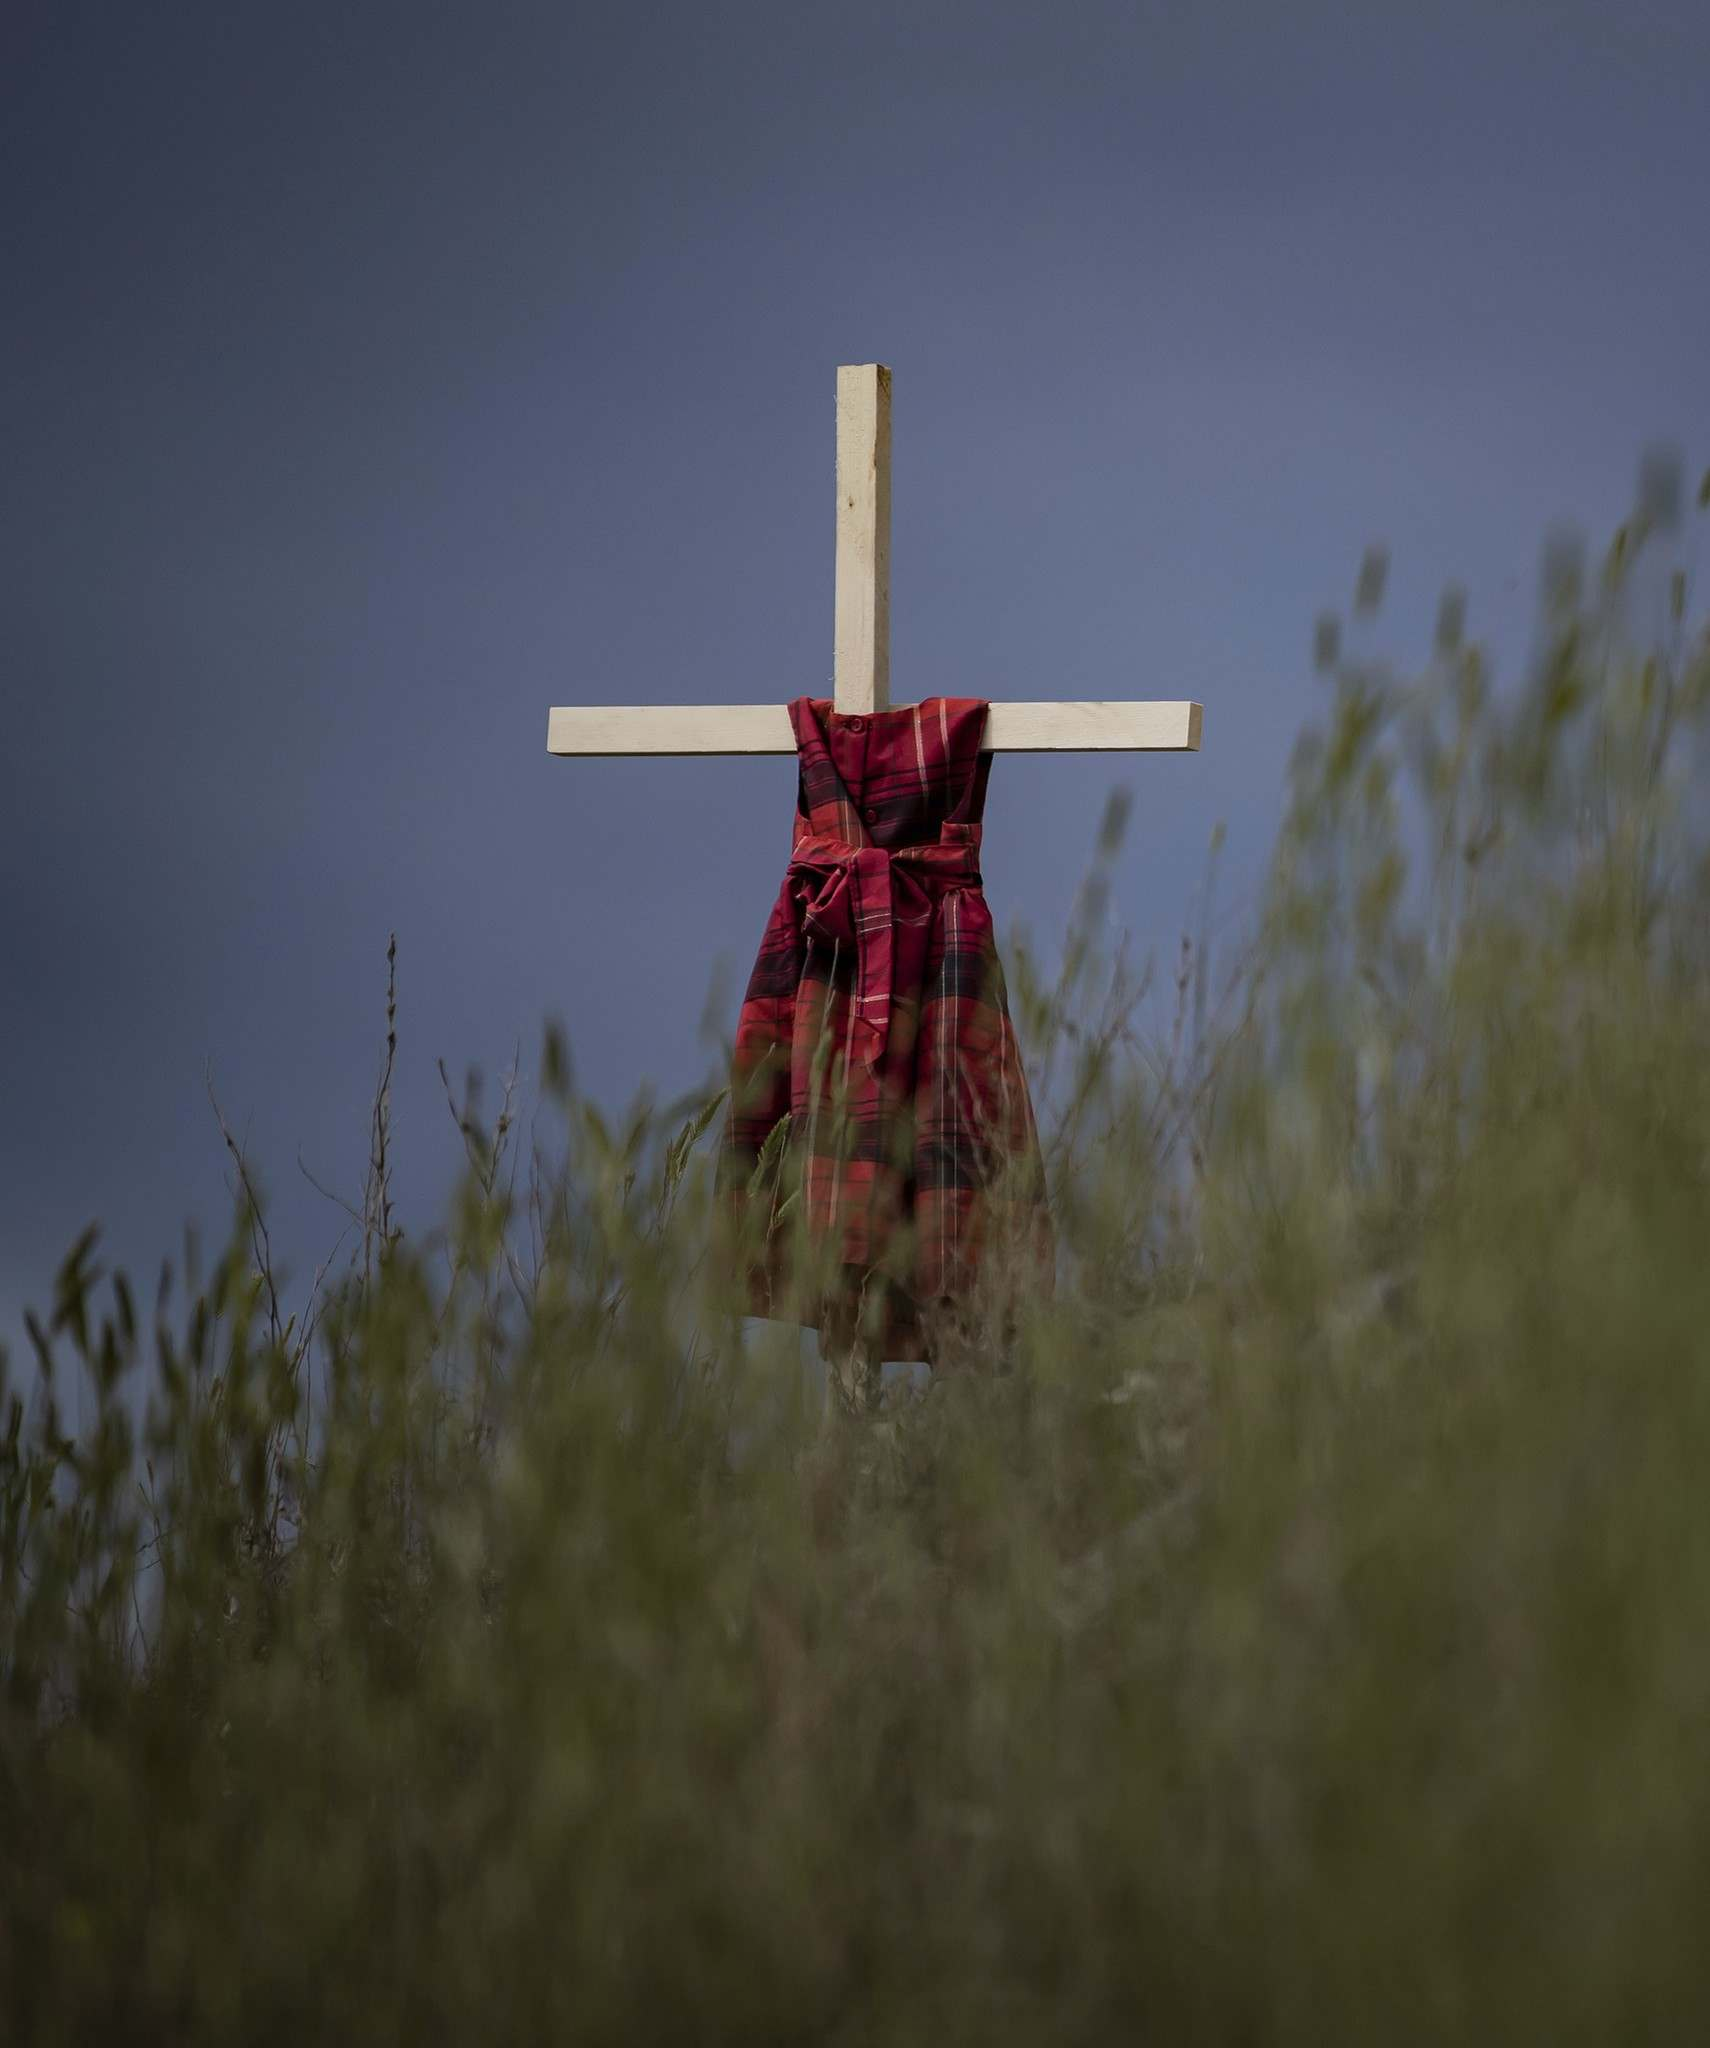 A child's dress hangs on a cross in the wind near the former Kamloops Indian Residential School, to honour the 215 children whose remains have been discovered buried near the facility. (Darryl Dyck/ The Canadian Press)